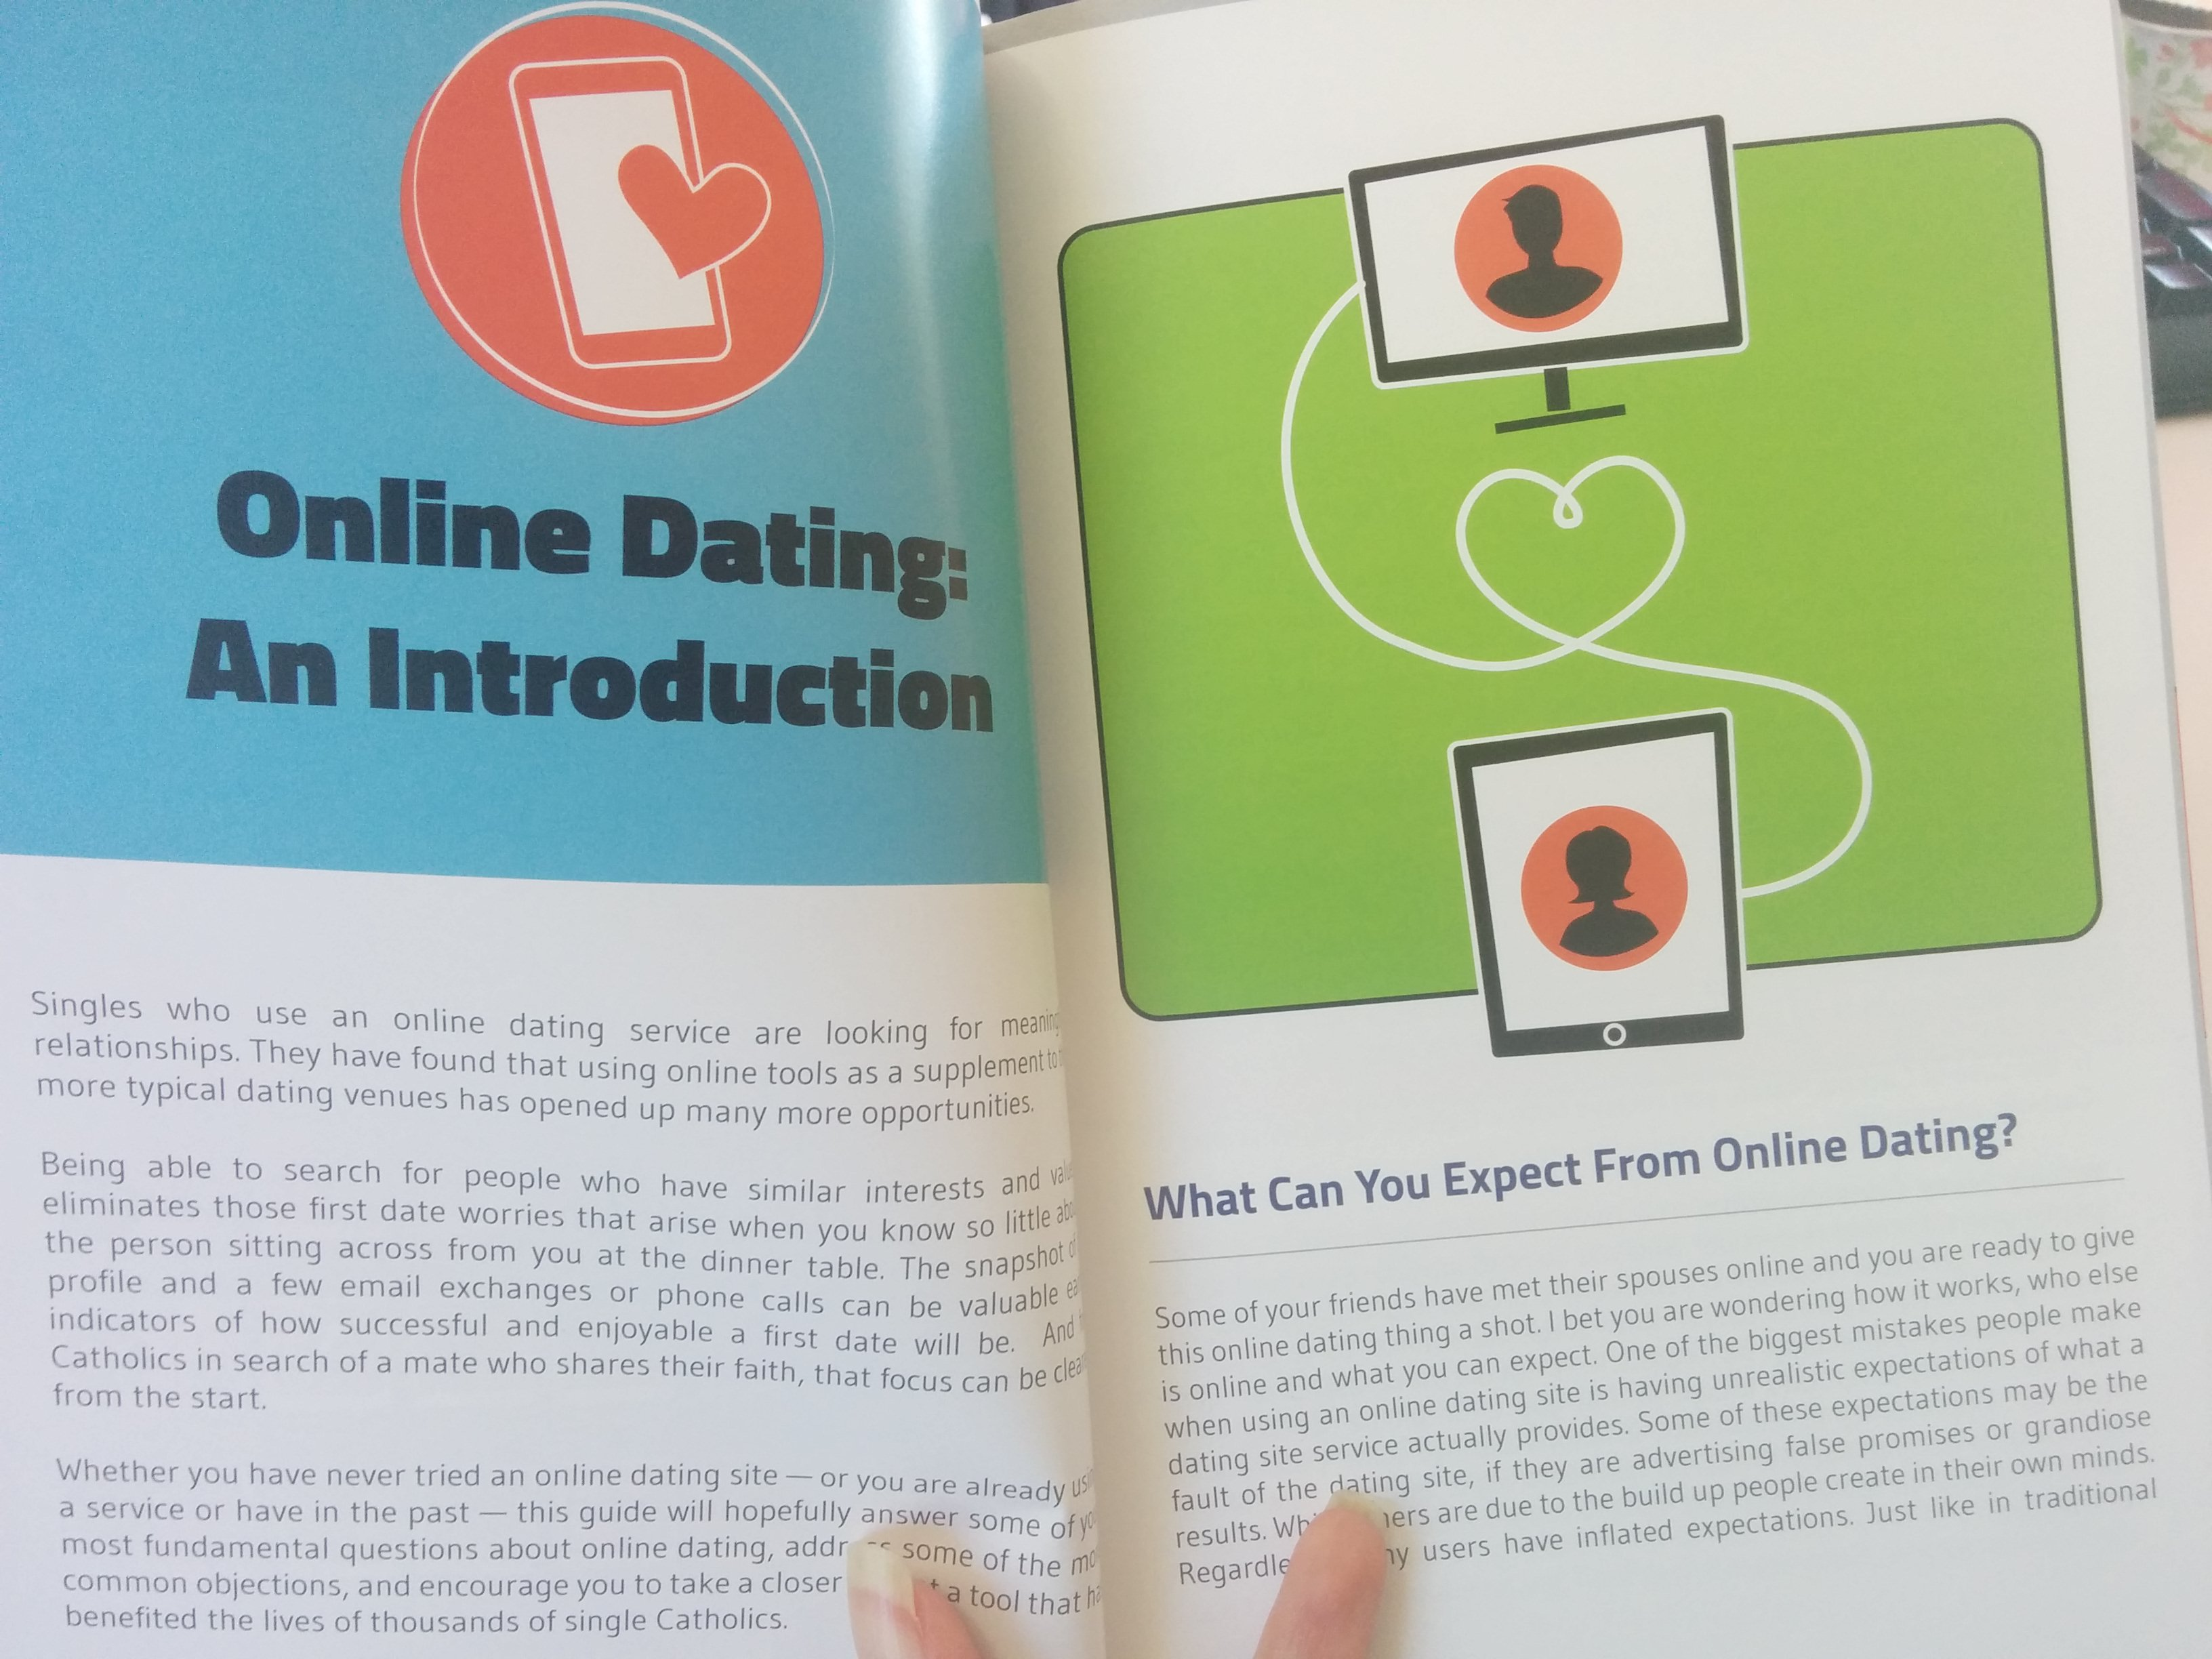 questions about online dating